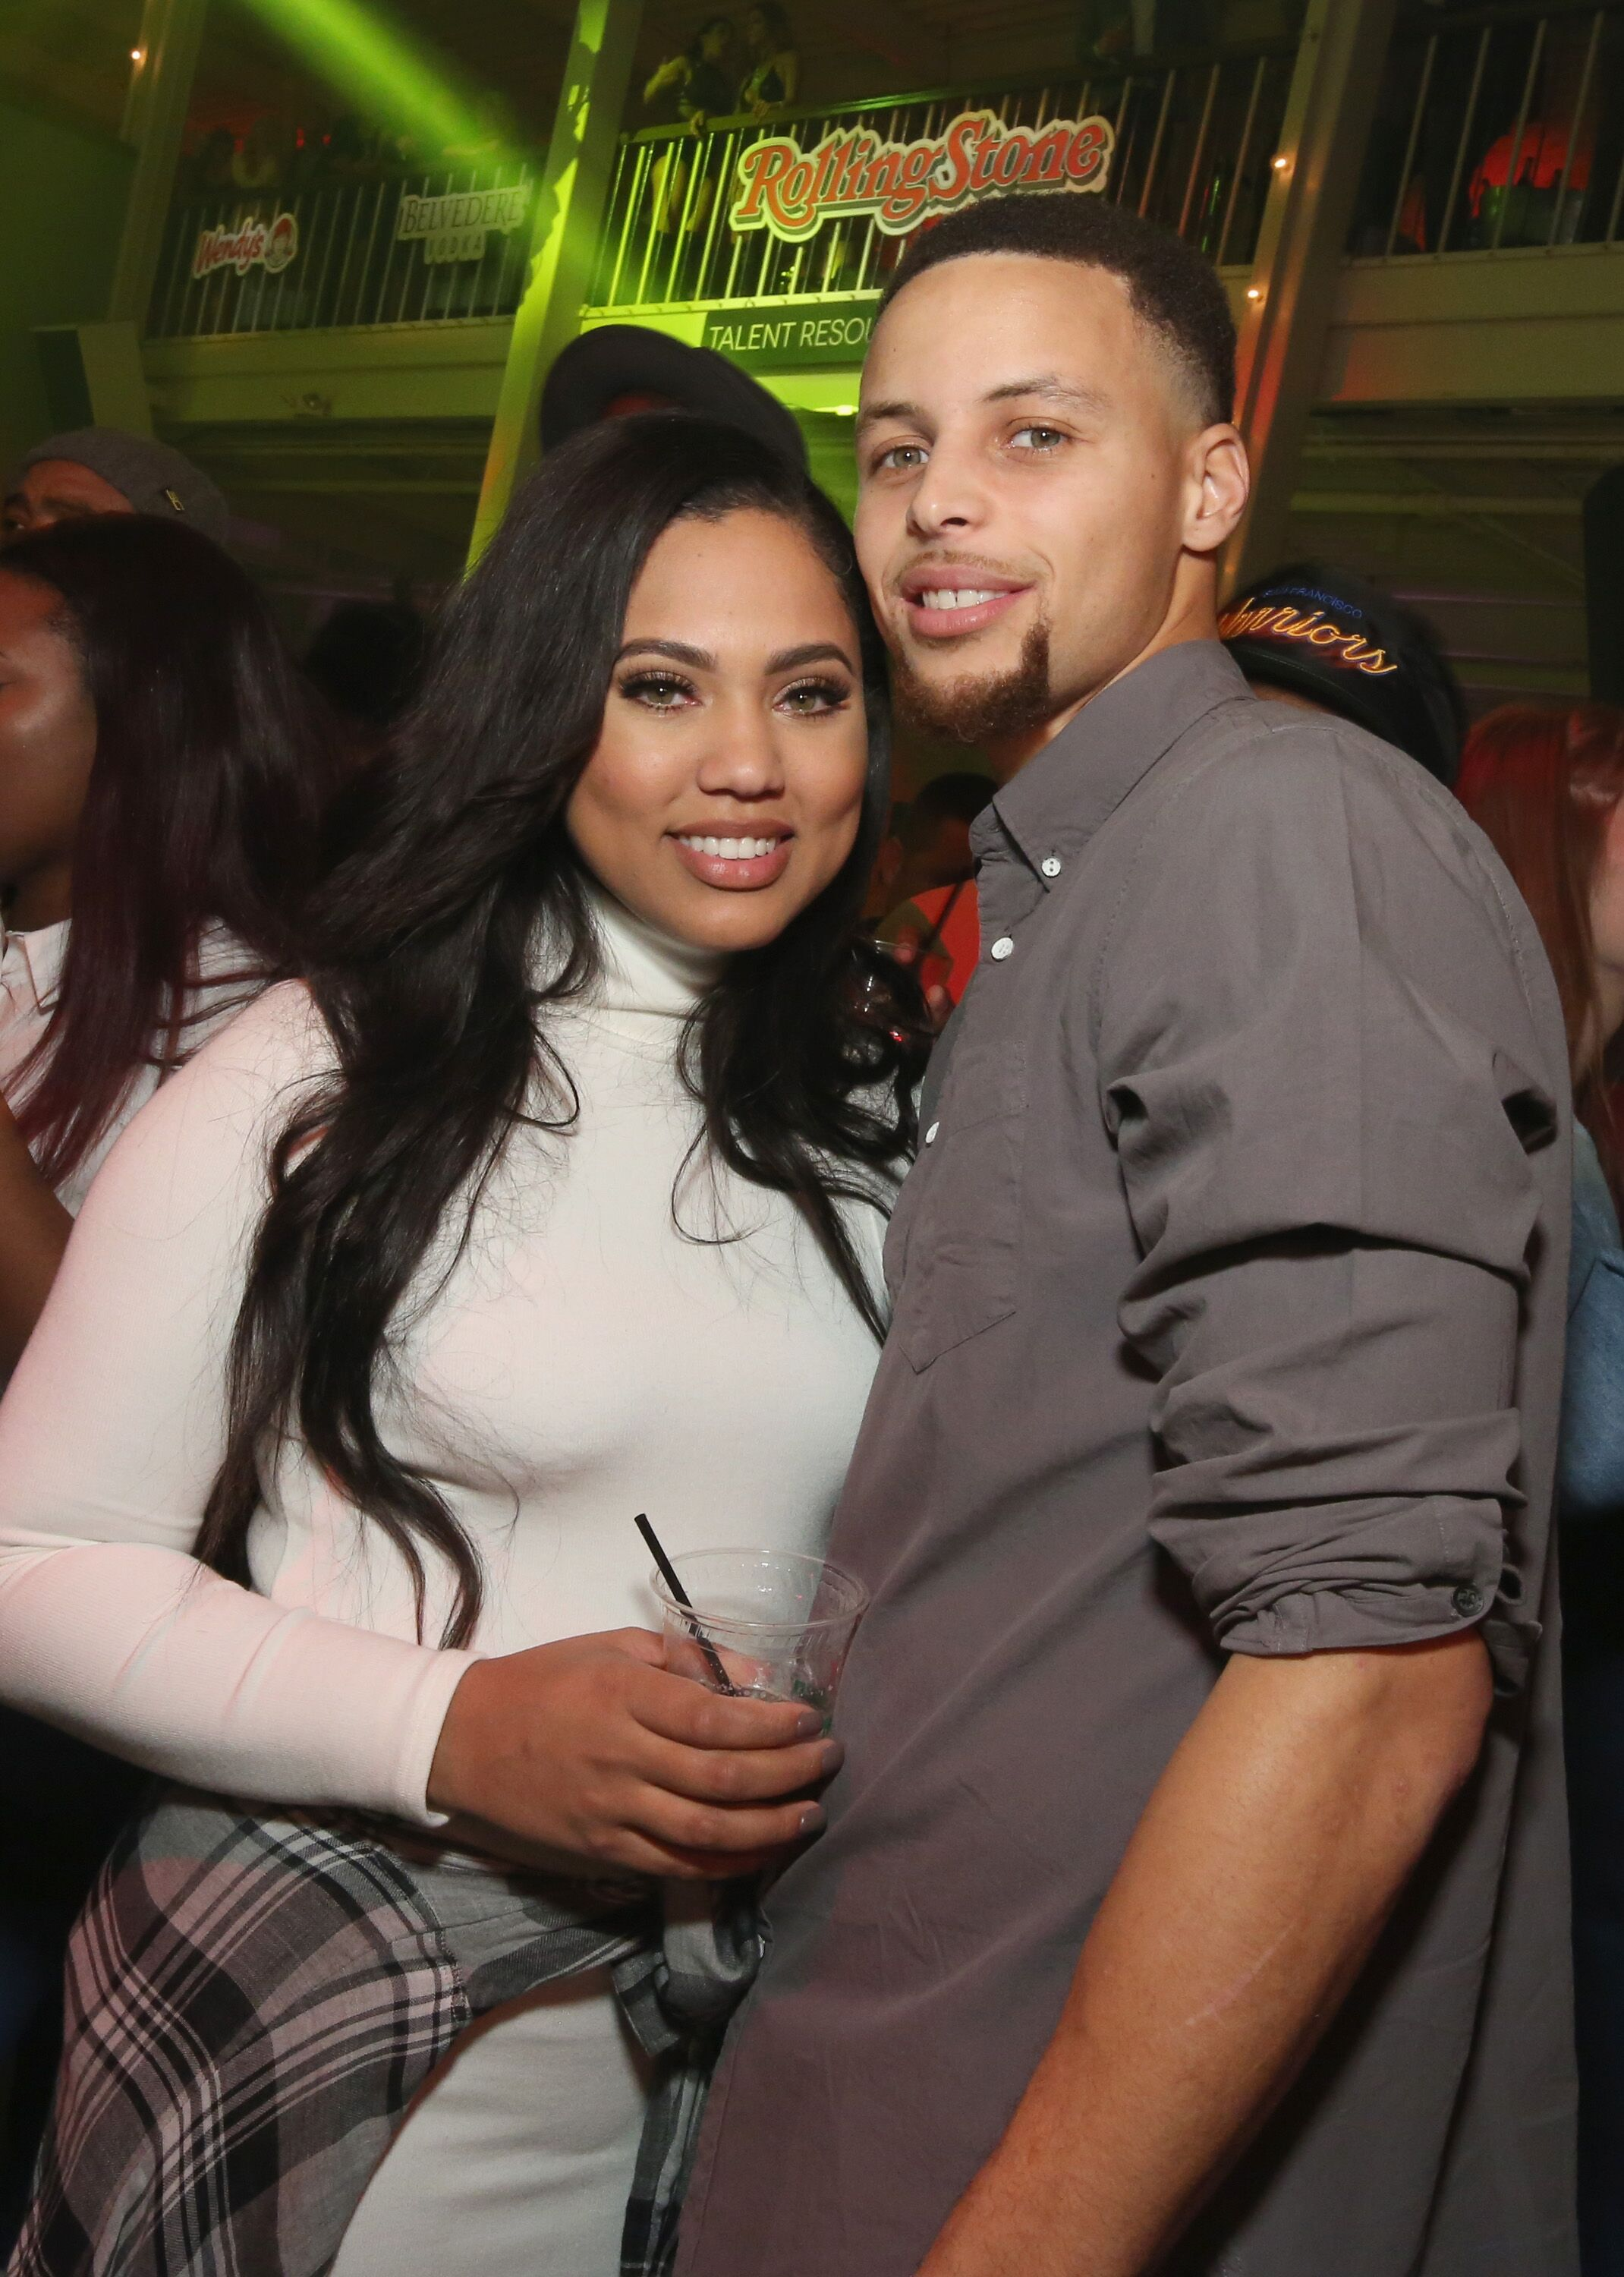 Ayesha Curry and NBA player Stephen Curry attend Rolling Stone Live SF with Talent Resources on February 7, 2016. | Photo: Getty Images